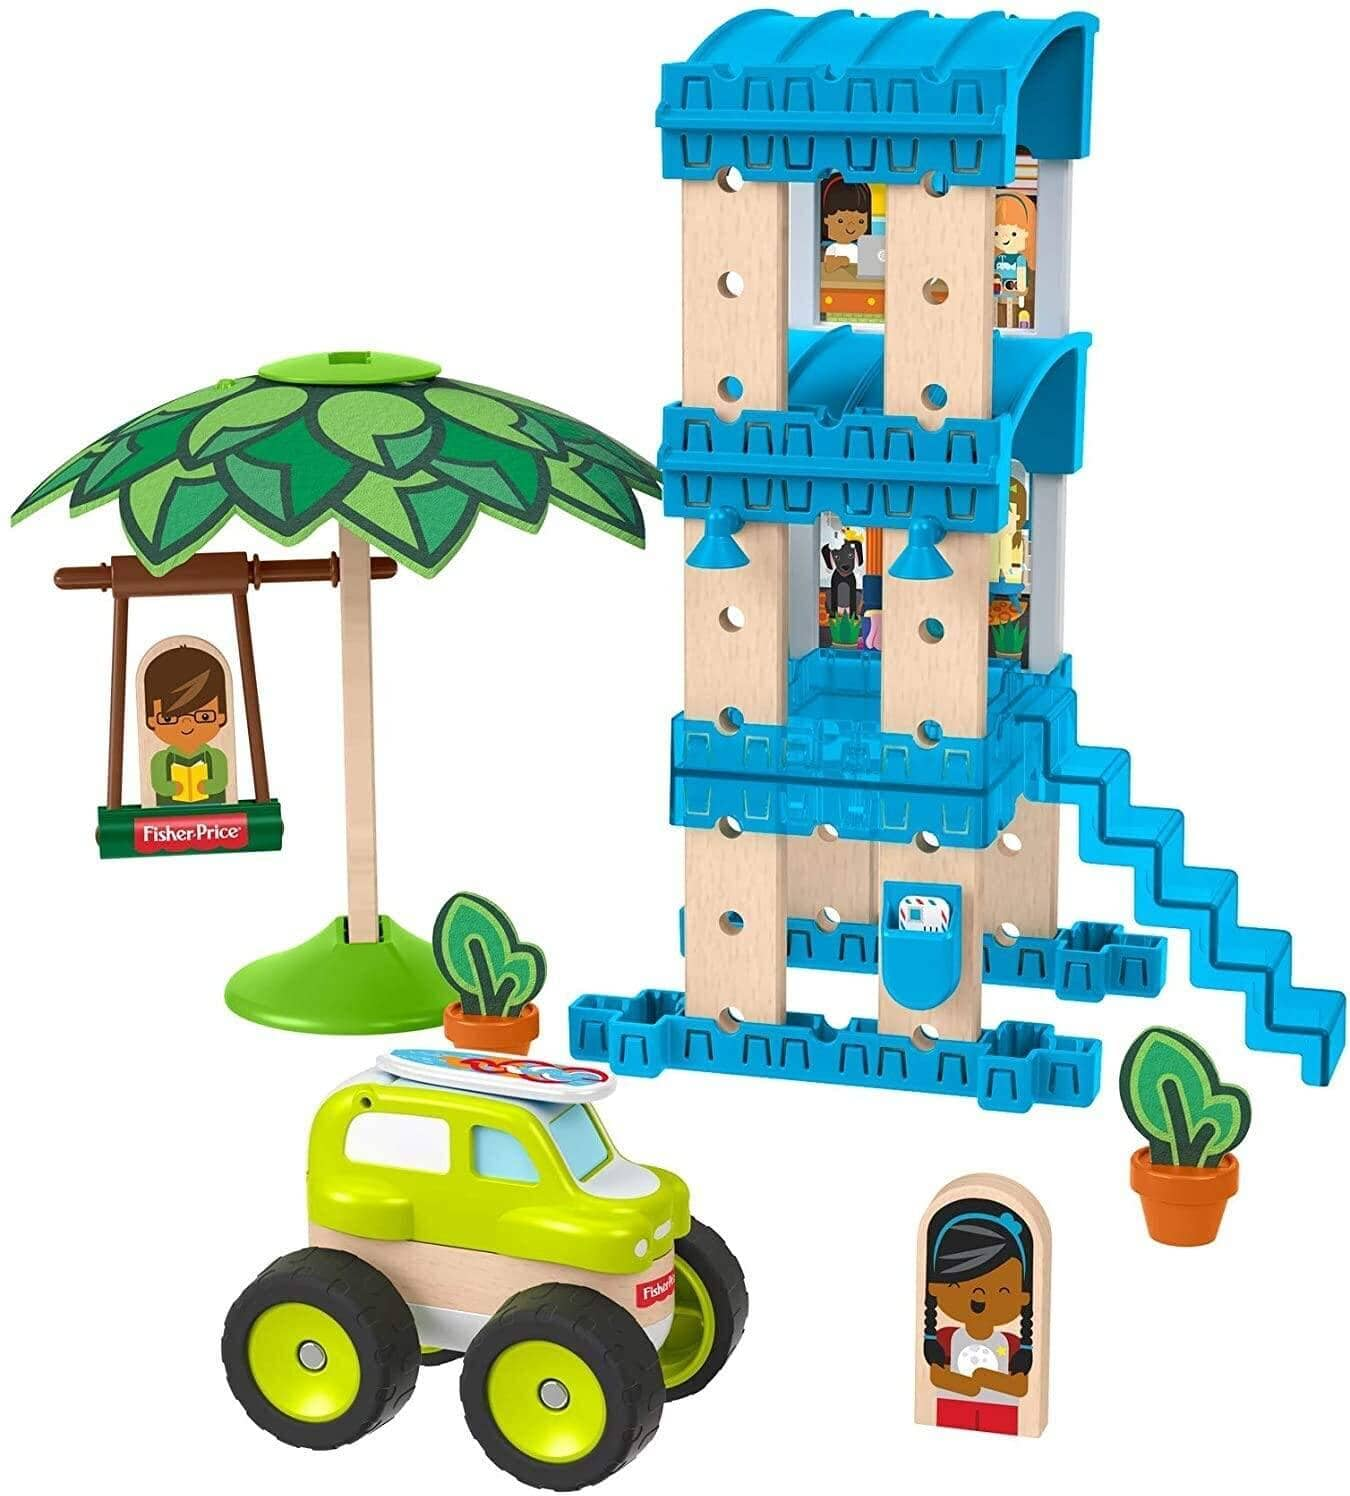 Fisher-Price Wonder Makers Sets: Beach Bungalow $6.40, Special Delivery Depot $7.70 at Amazon